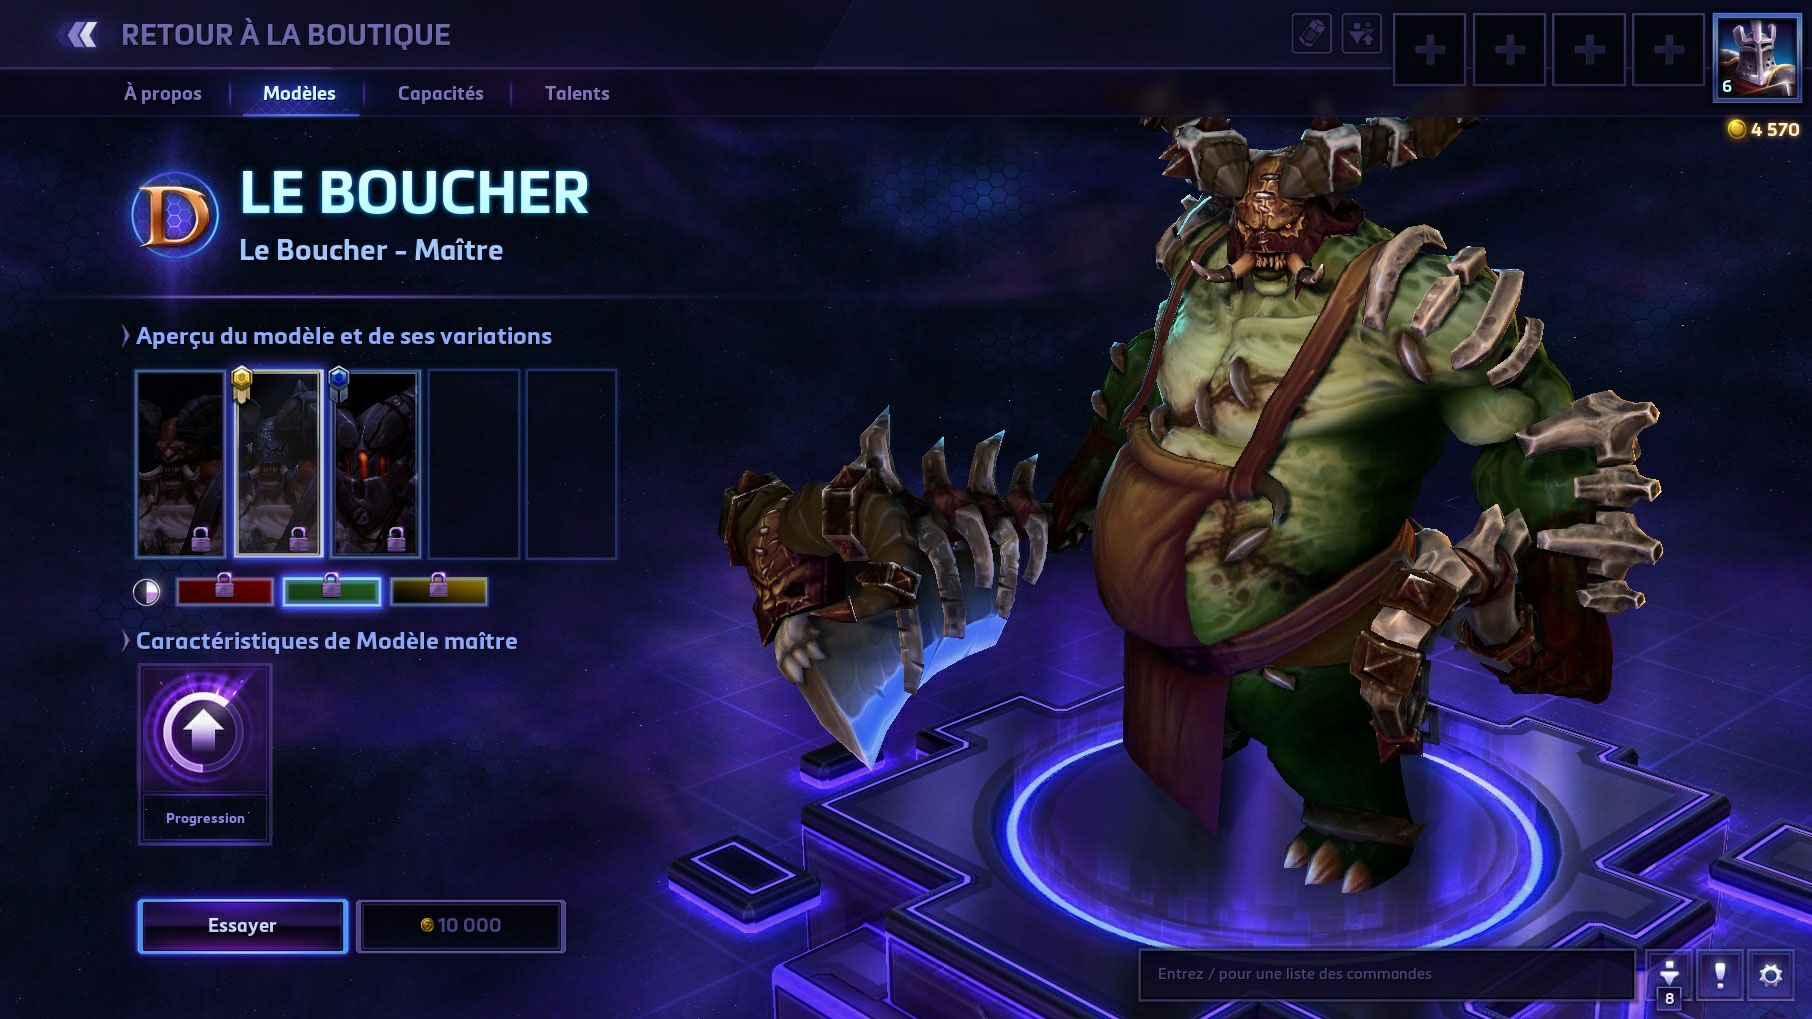 Apparence du Boucher dans Heroes of the Storm.